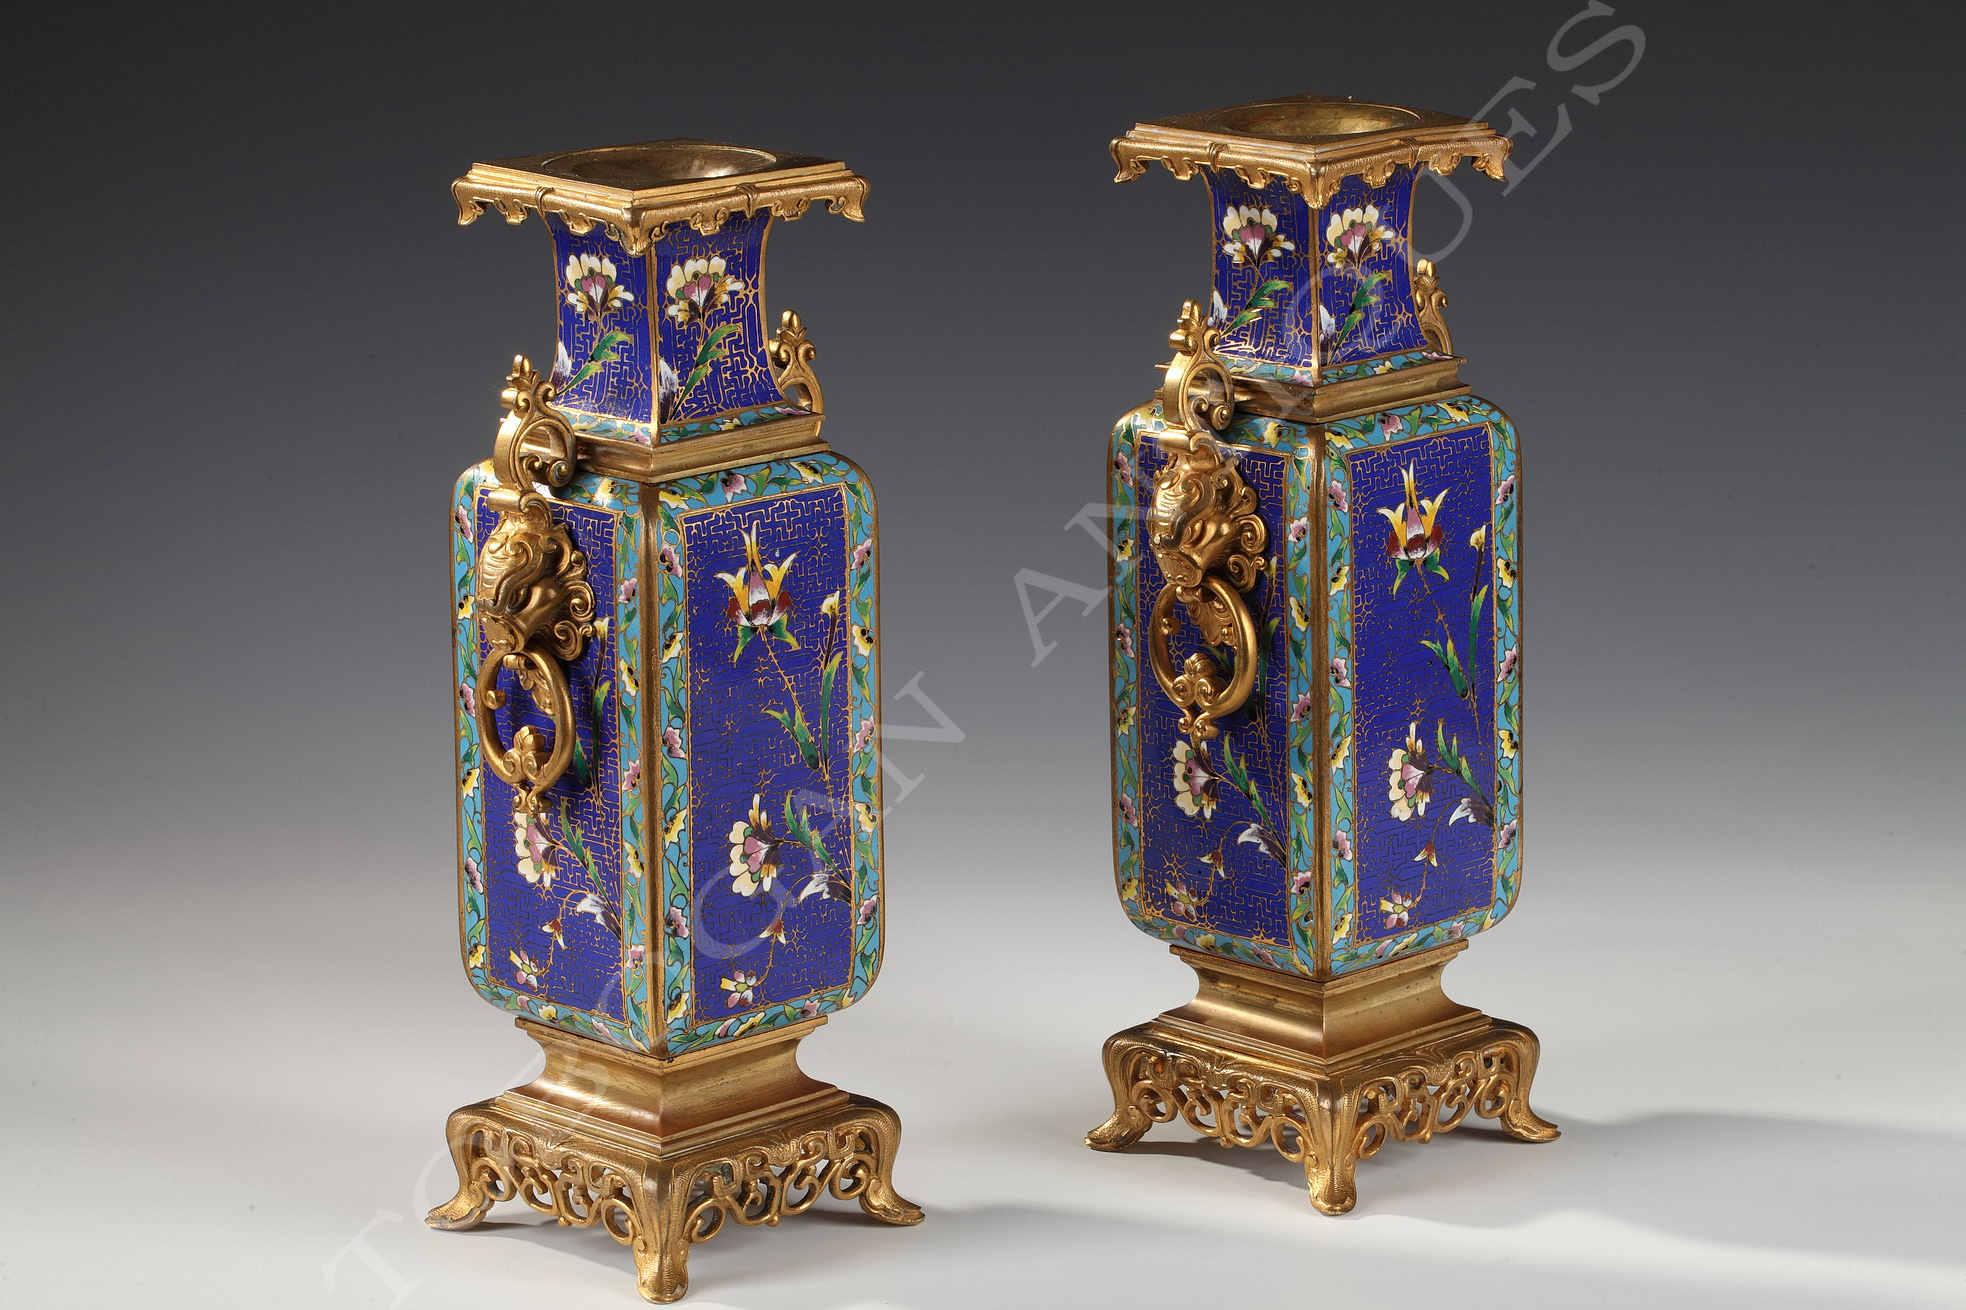 paire de vases escalier de cristal tobogan antiques. Black Bedroom Furniture Sets. Home Design Ideas